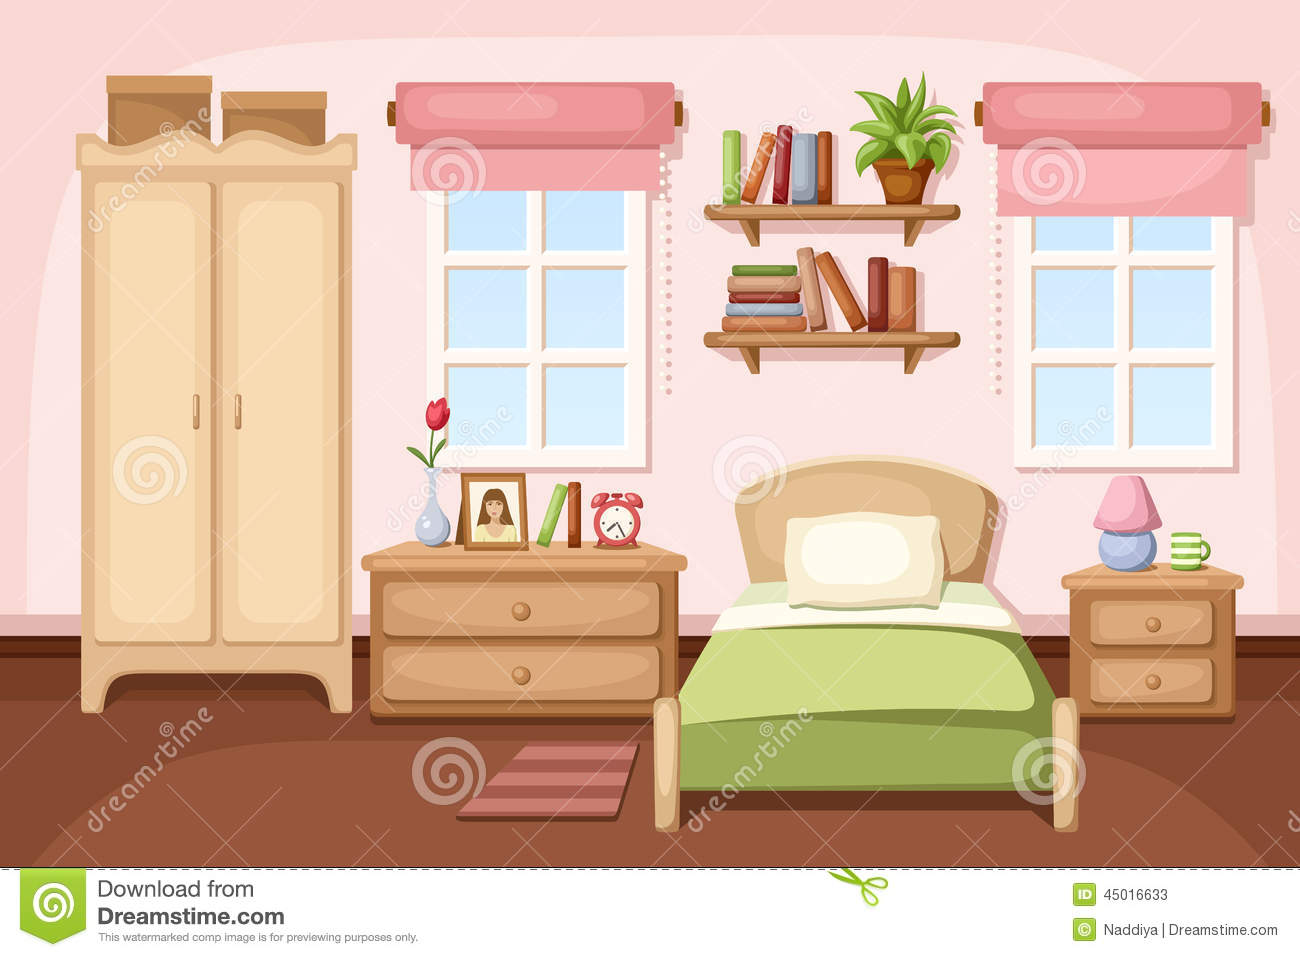 Bedroom clipart clipart panda free clipart images for Cuarto ordenado animado